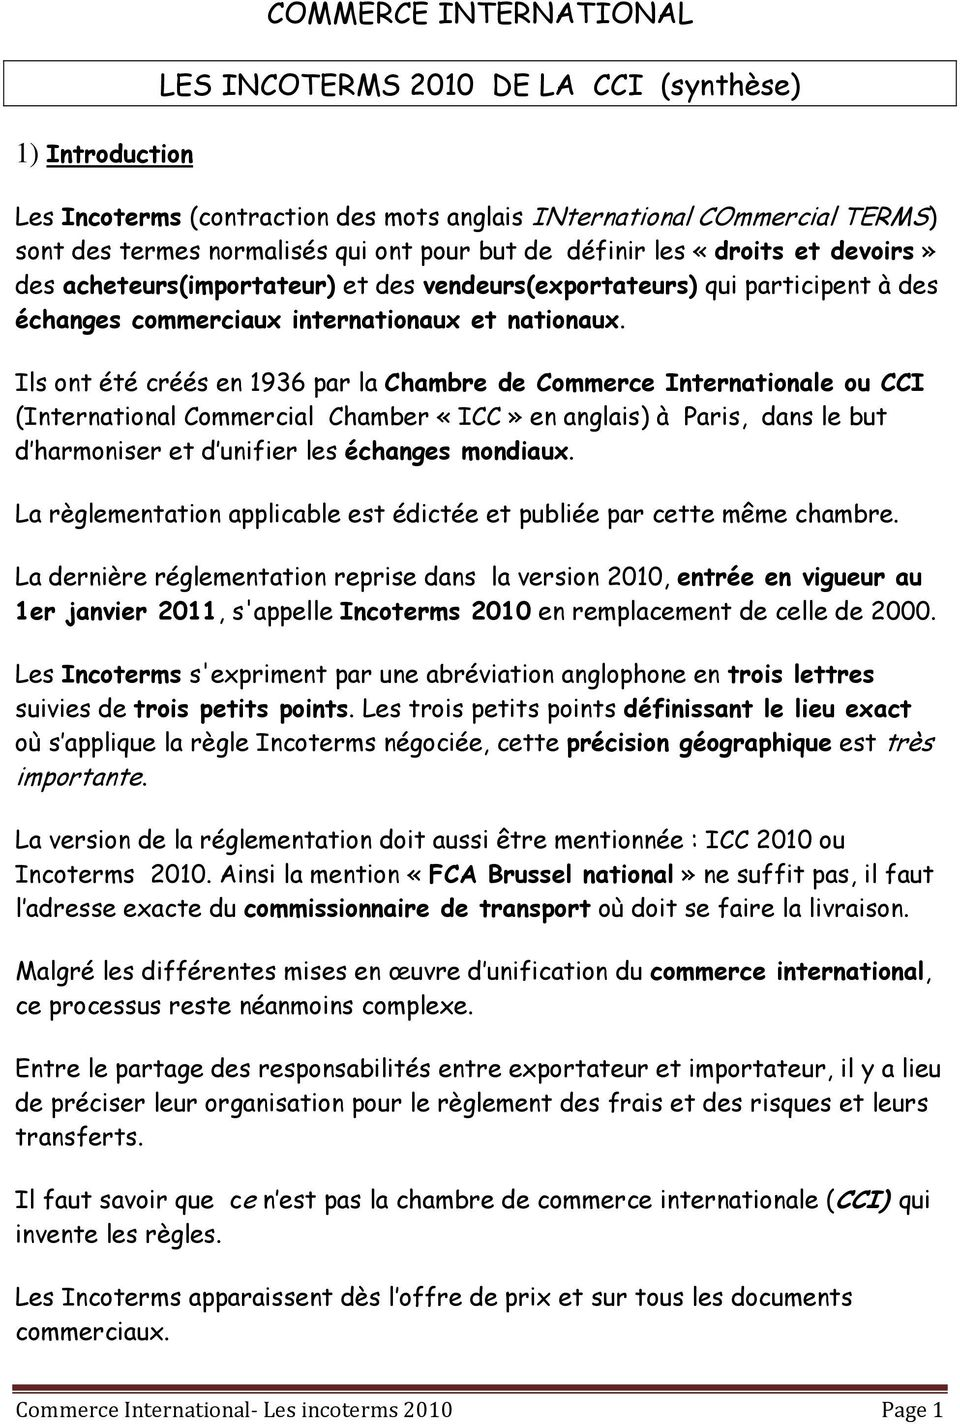 Commerce international les incoterms 2010 de la cci synth se pdf - Chambre de commerce de paris adresse ...